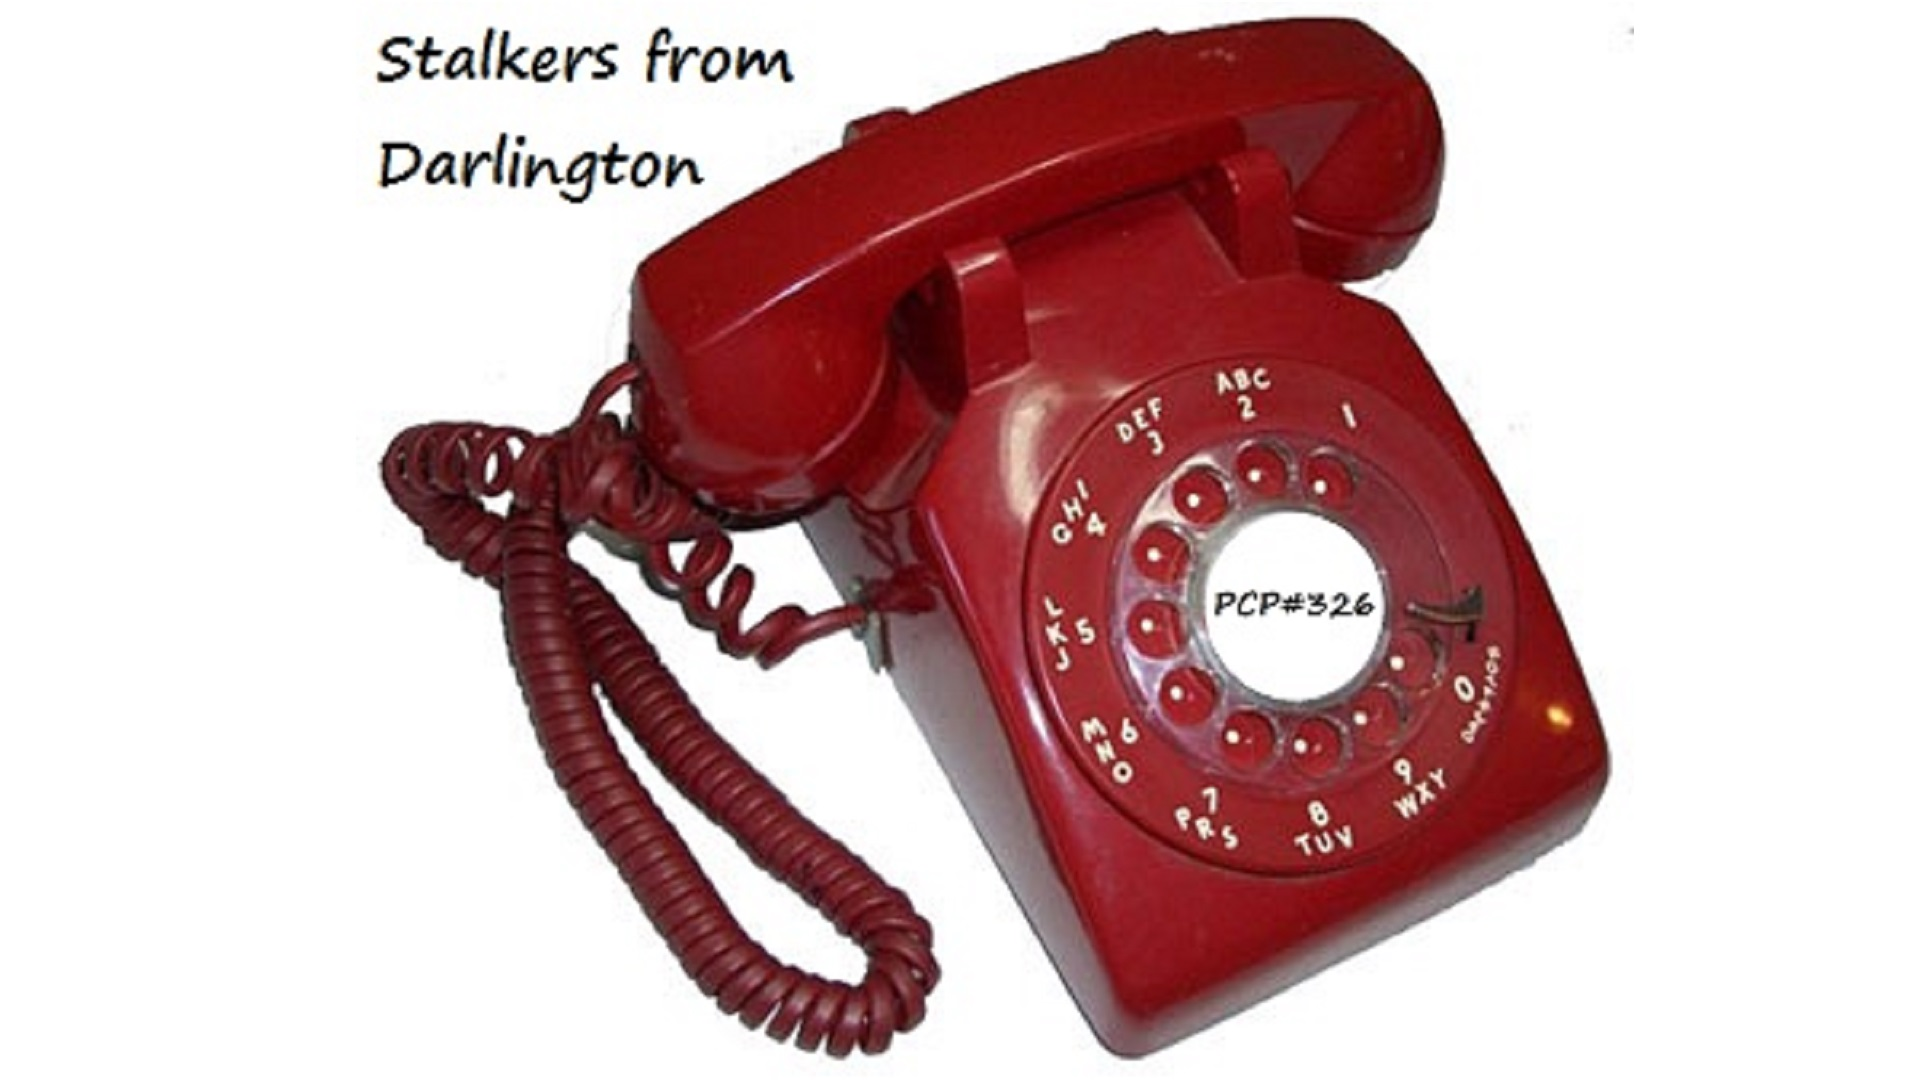 PCP#326 Rewind... Stalkers from Darlington...